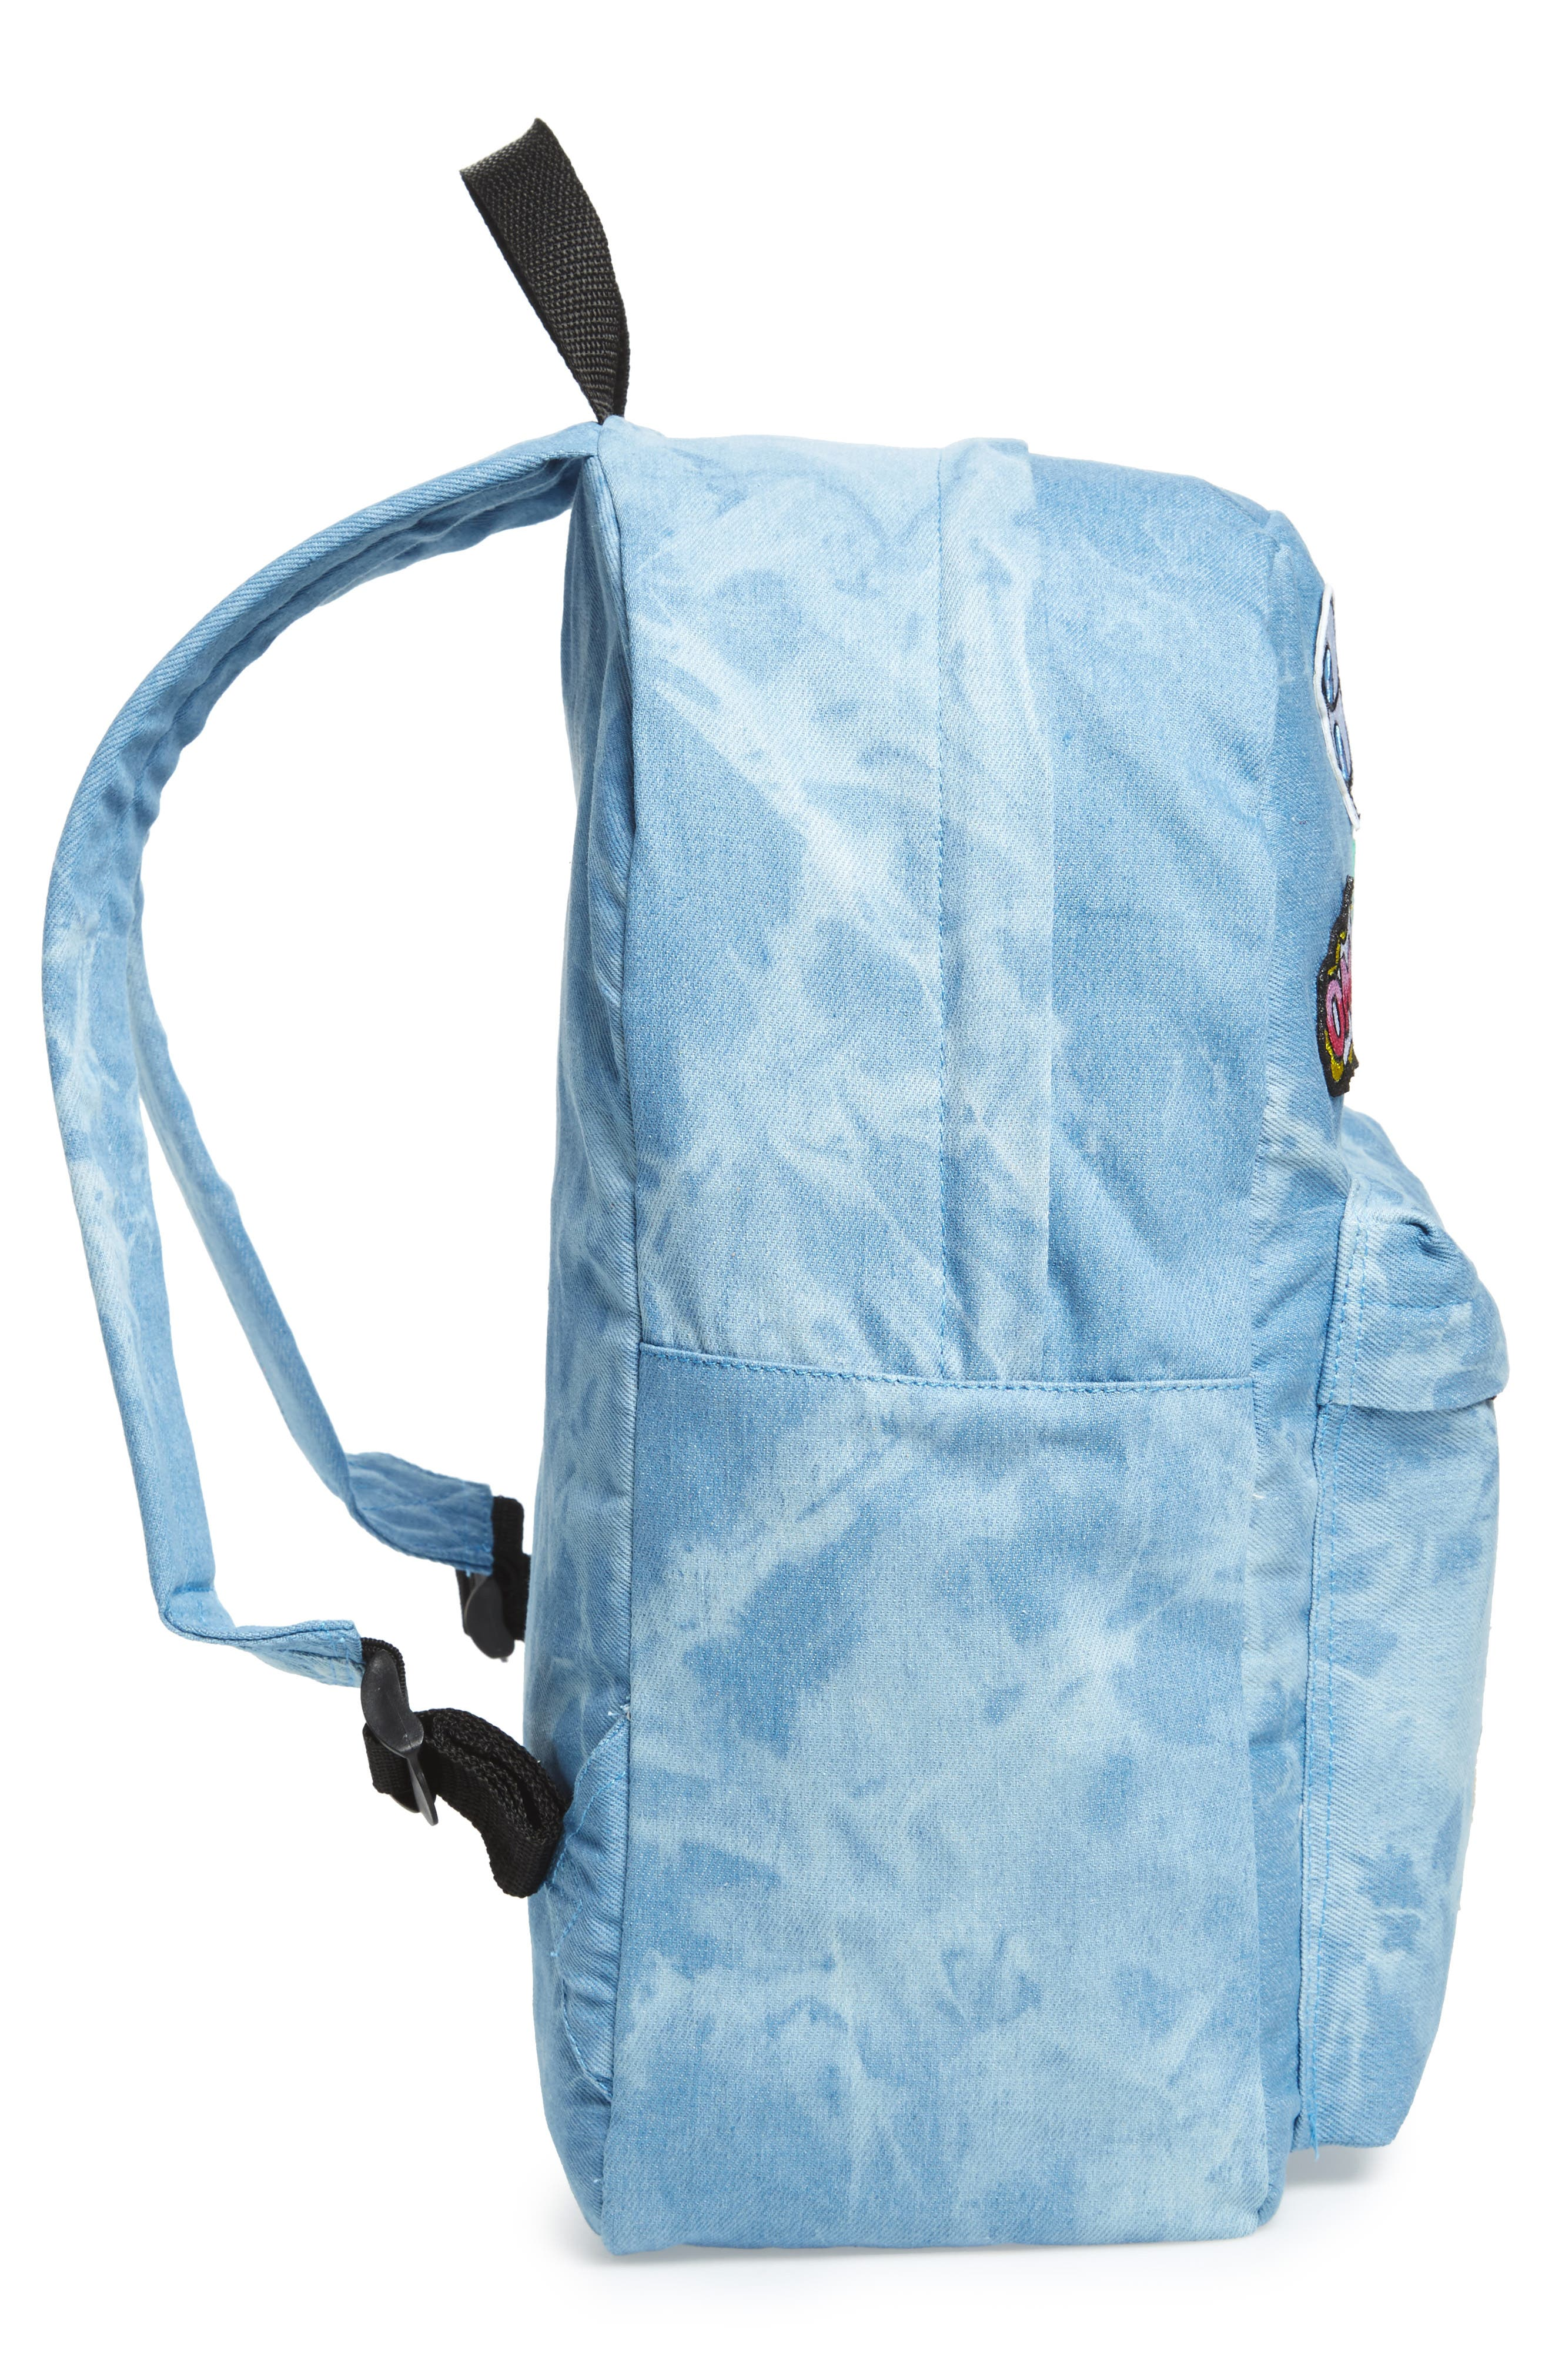 Accessory Collective Tie Dye Backpack,                             Alternate thumbnail 4, color,                             400